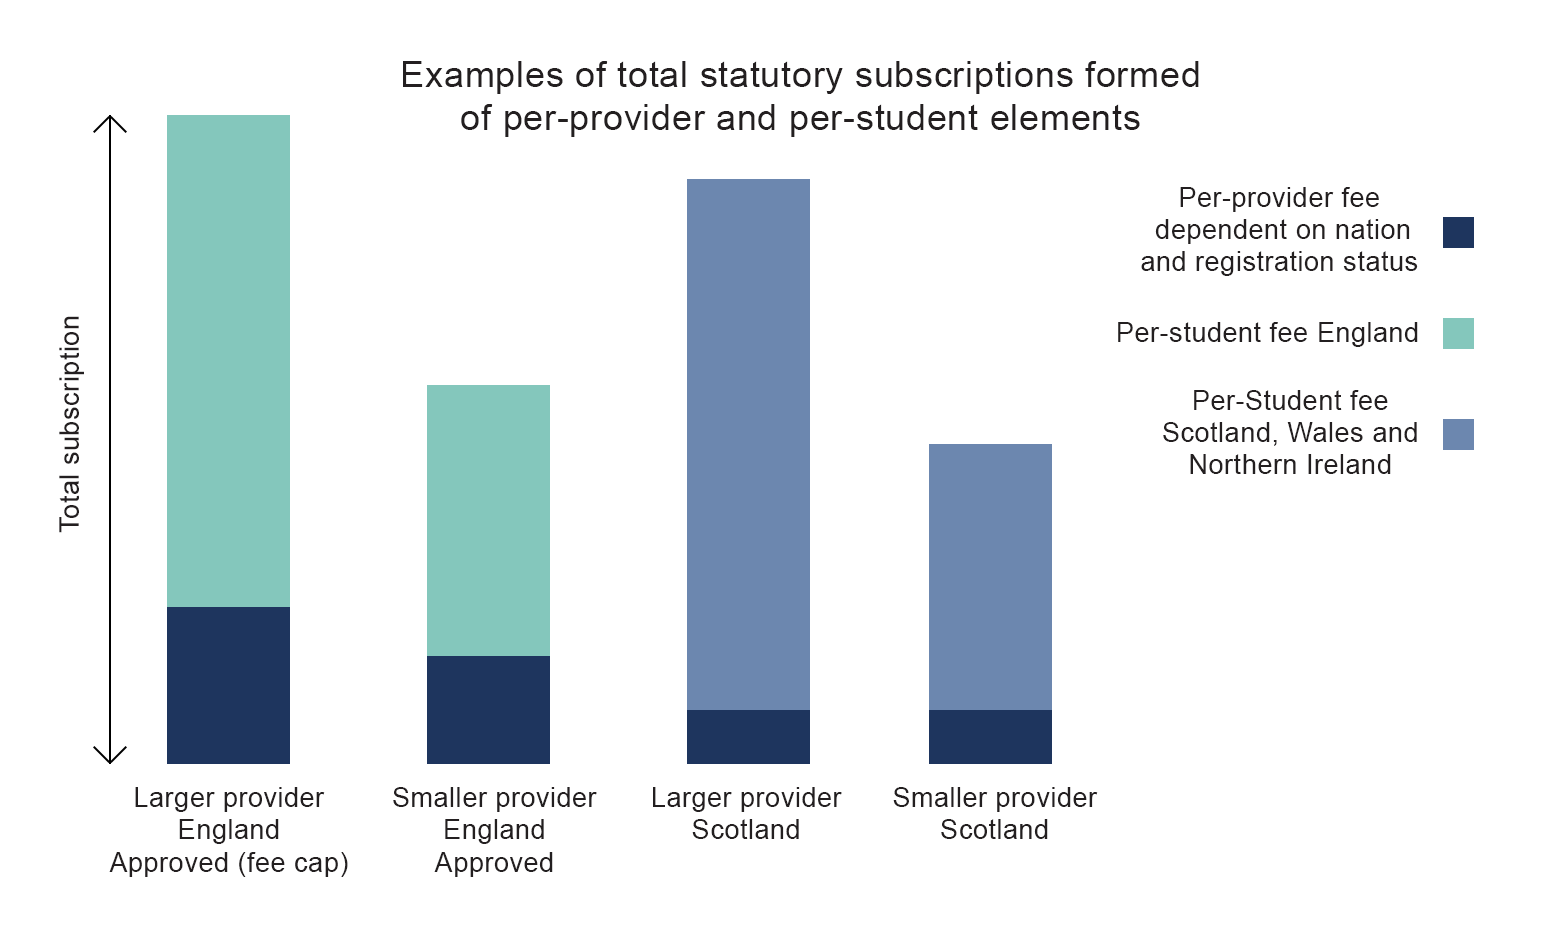 Total statutory subscription